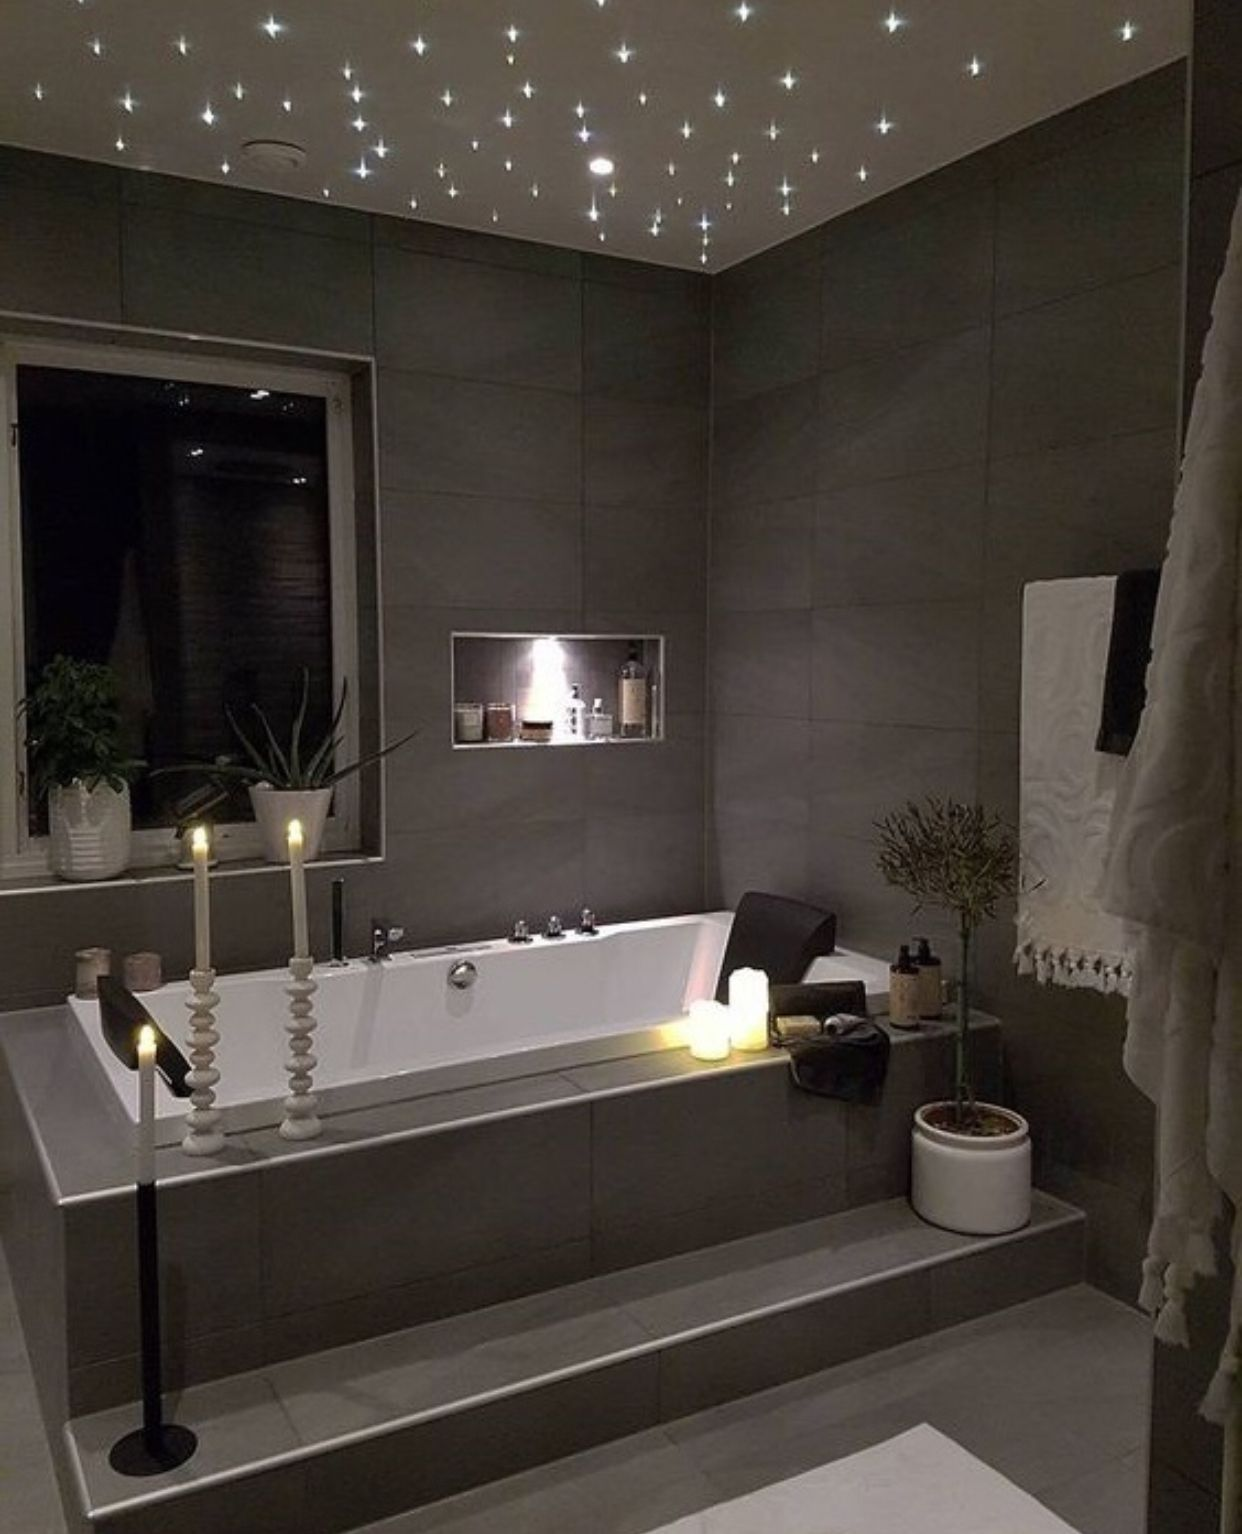 Pin By Leana On Ideas For Home Bathroom Design Luxury Bathroom Interior Design Small Bathroom Remodel